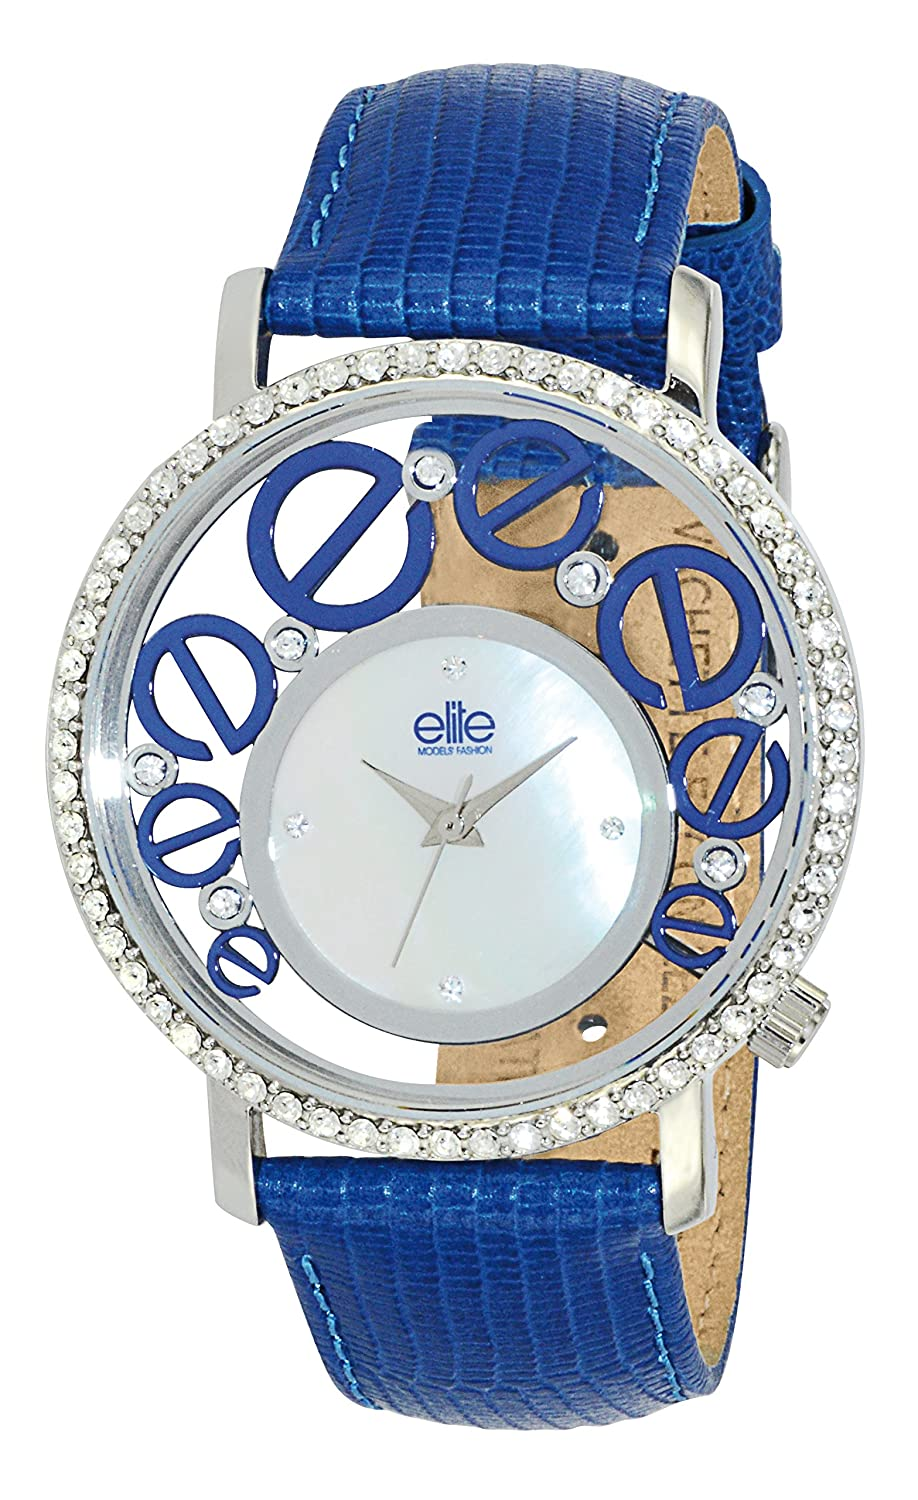 Elite Models' Fashion Damen-Armbanduhr Analog Quarz Blau E53952-208